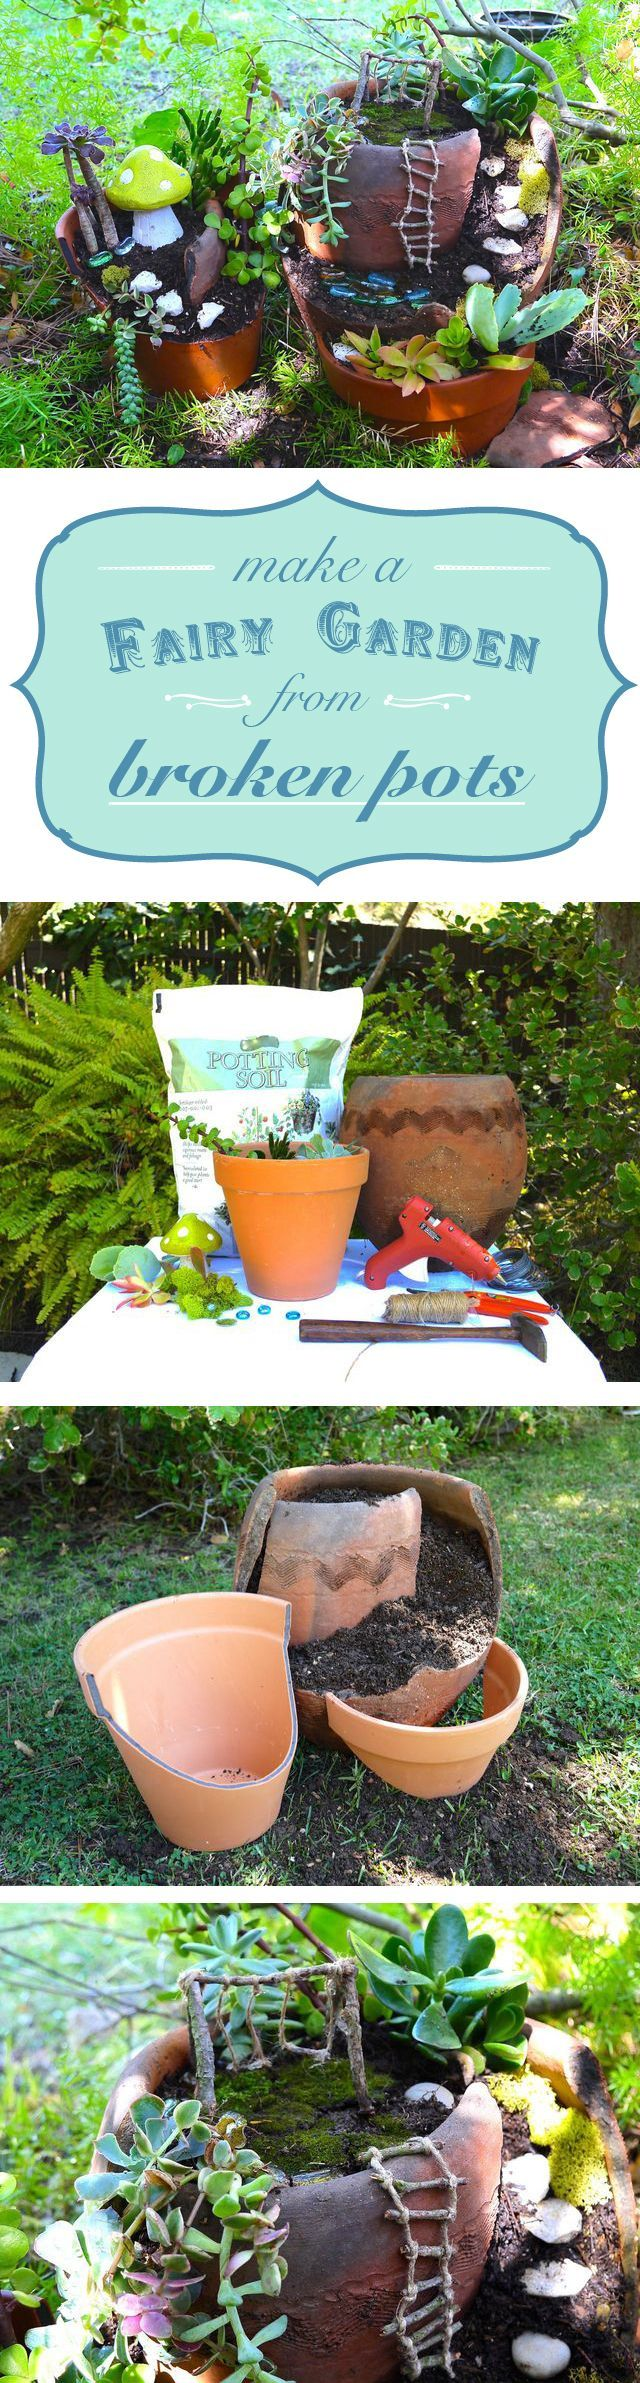 Genius way to use broken pots! Make a fairy garden as decoration and a place for the kids to play and use their imagination. Love it! www.ehow.com/...